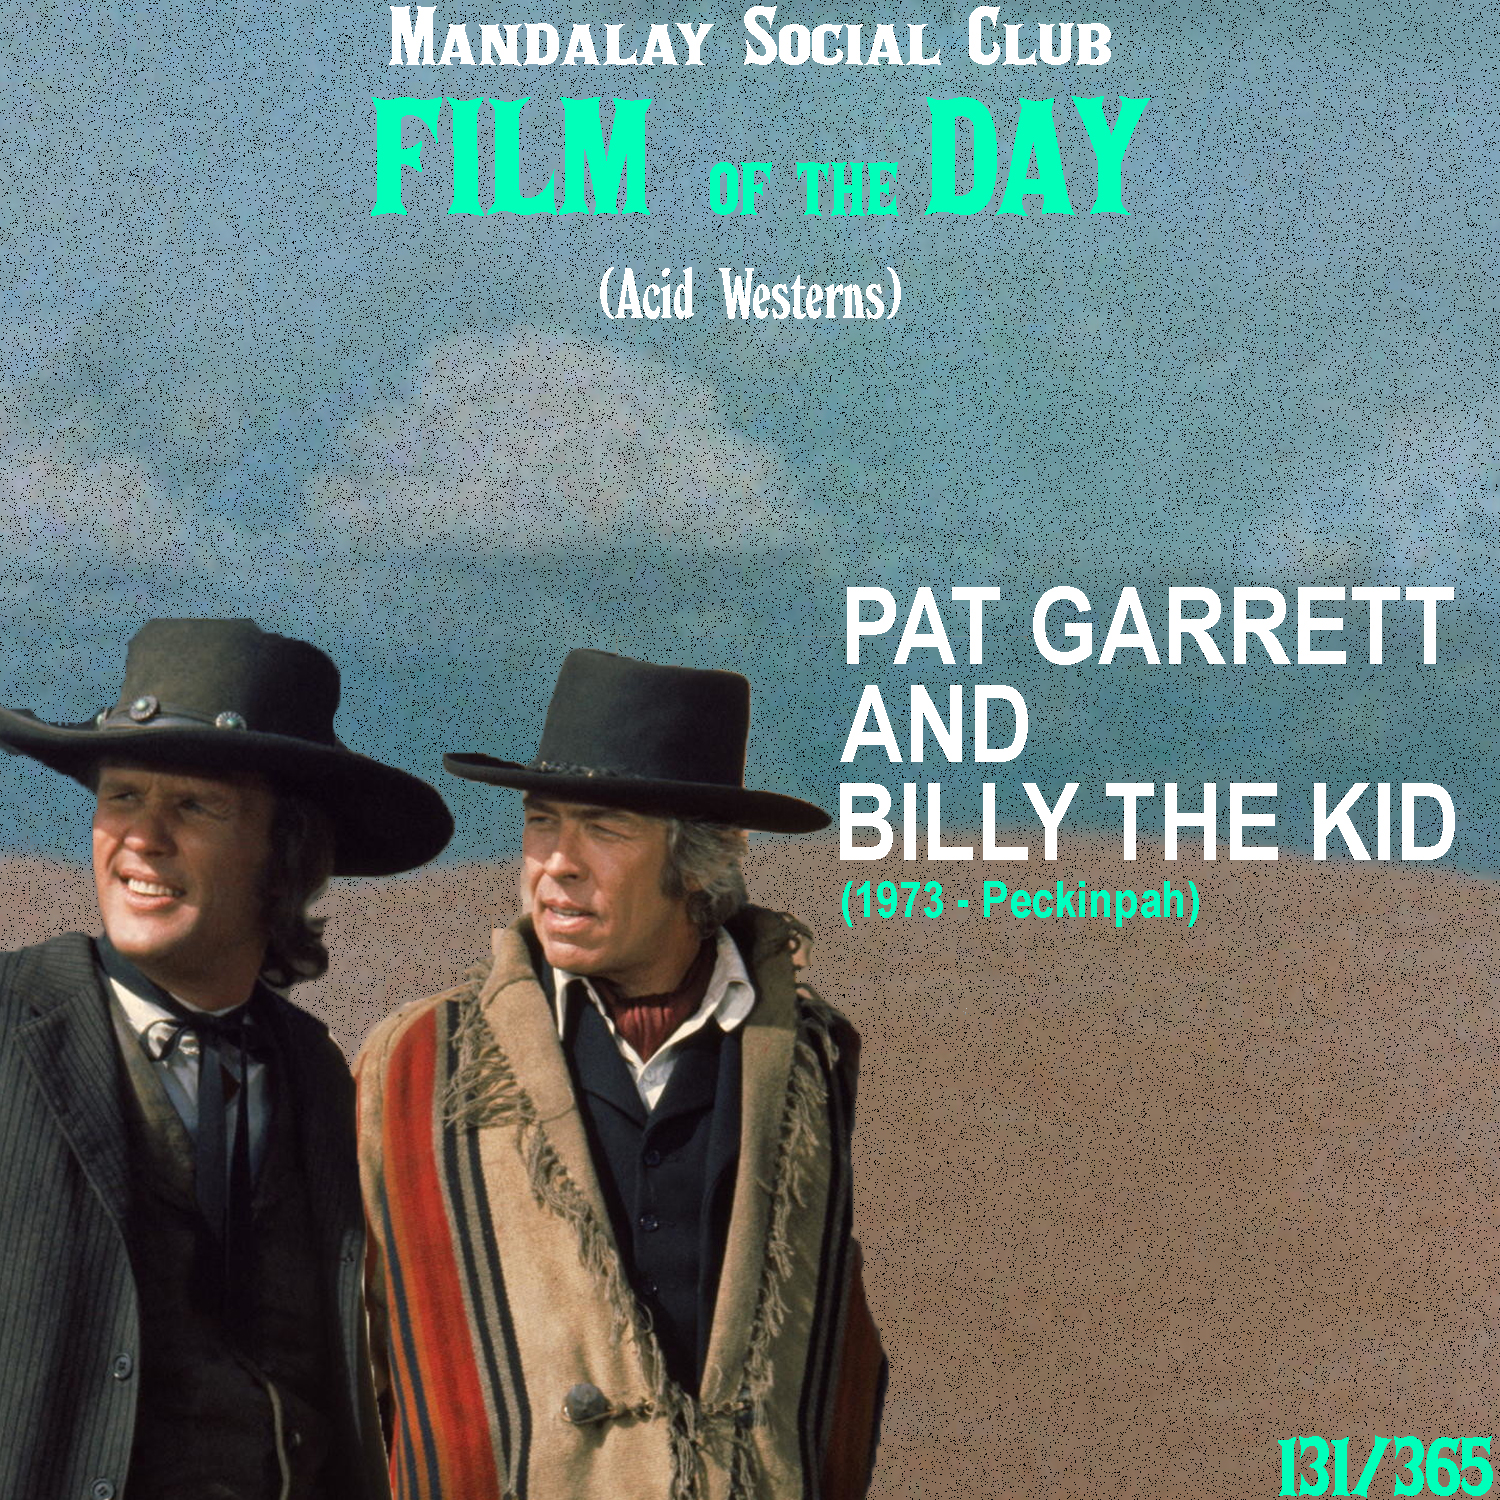 PAT GARRETT and BILLY THE KID     (dir. Sam Peckinpah)    Pat Garrett  isn't too much of an Acid Western per se, but it does have a lot of it's influence deep down in it's DNA. The film was written by one of the foremost writers of the subgenera, Rudolph Werlitzer and was intended to be directed by the creator of the Acid Western, Monte Hellman. Add the counter-culture icons in Kris Kristofferson and Bob Dylan to the cast and you got yourself the workings of a true Acid Western.  Directed by the violently legendary director Sam Peckinpah,  Pat Garrett and Billy the Kid  is a fictionalized take on Billy the Kid's last days. James Coburn stars as Pat Garrett, the newly appointed sheriff who's been assigned to take down his old friend Billy the Kid.  Peckinpah highlights the inner conflict Garrett feels as he's faced with the troubling dilemma of having to kill the young, free version of himself that he sees in Billy. The killing of Billy the Kid represents the ending of Garrett's drive for his youthful freedom.    5/5     WATCH: iTunes, Putlocker (FREE)